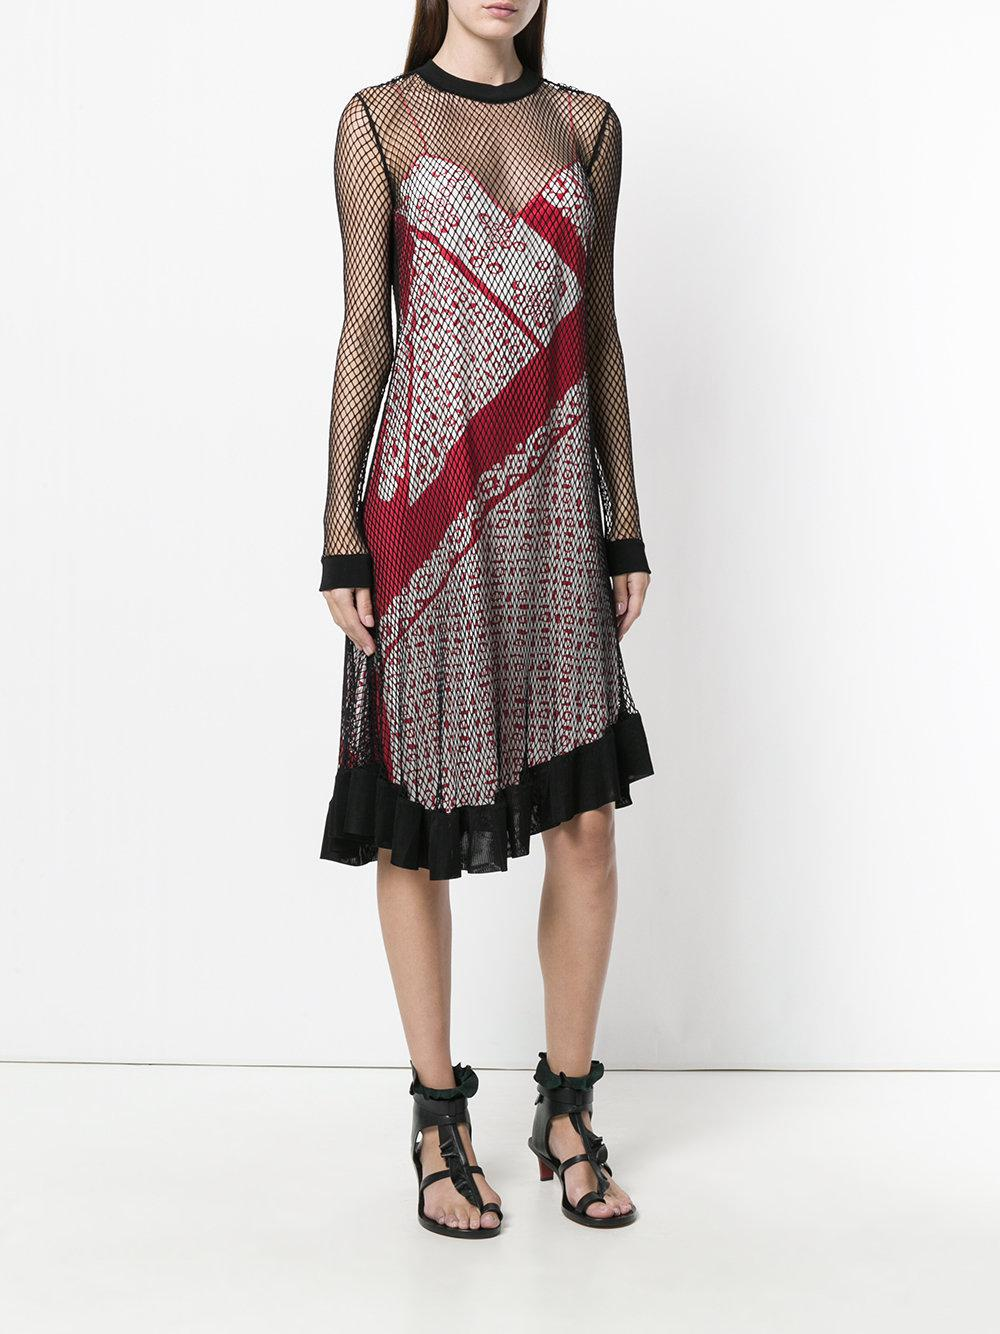 engineered animal stripe print cami dress with mesh overlayer - Multicolour Altuzarra